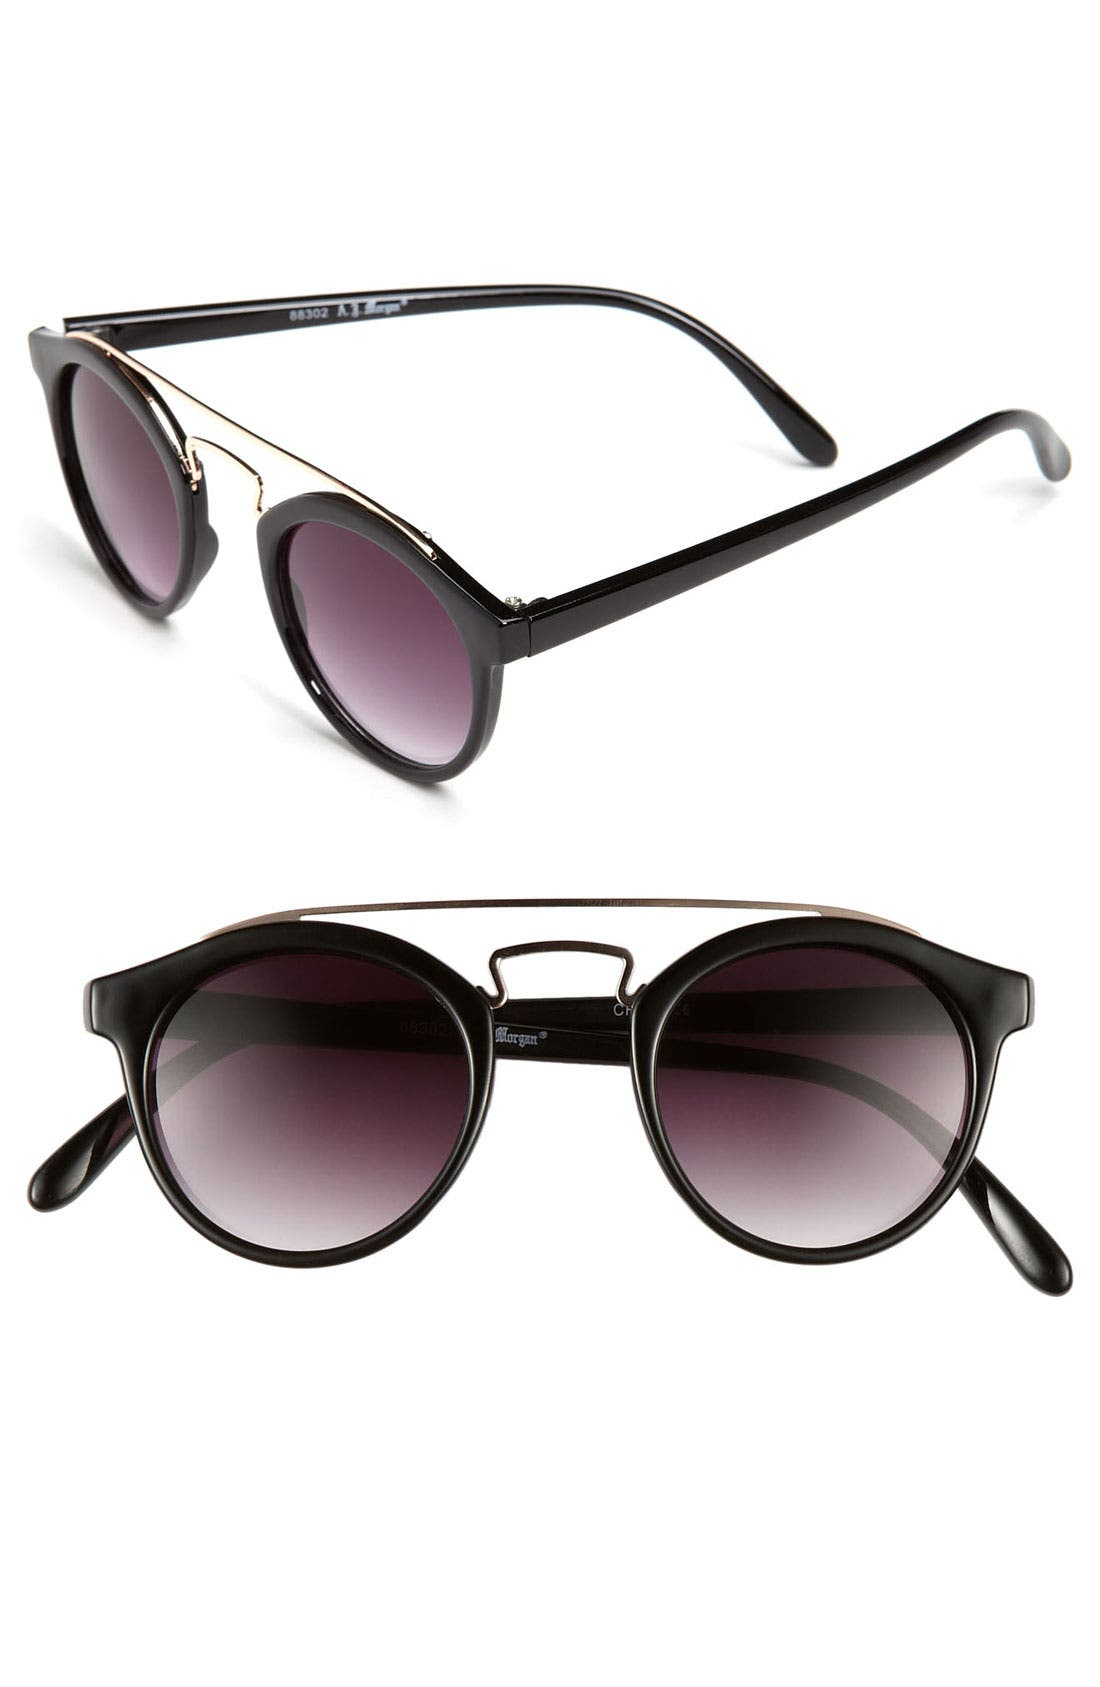 Main Image - A.J. Morgan 45mm Retro Sunglasses